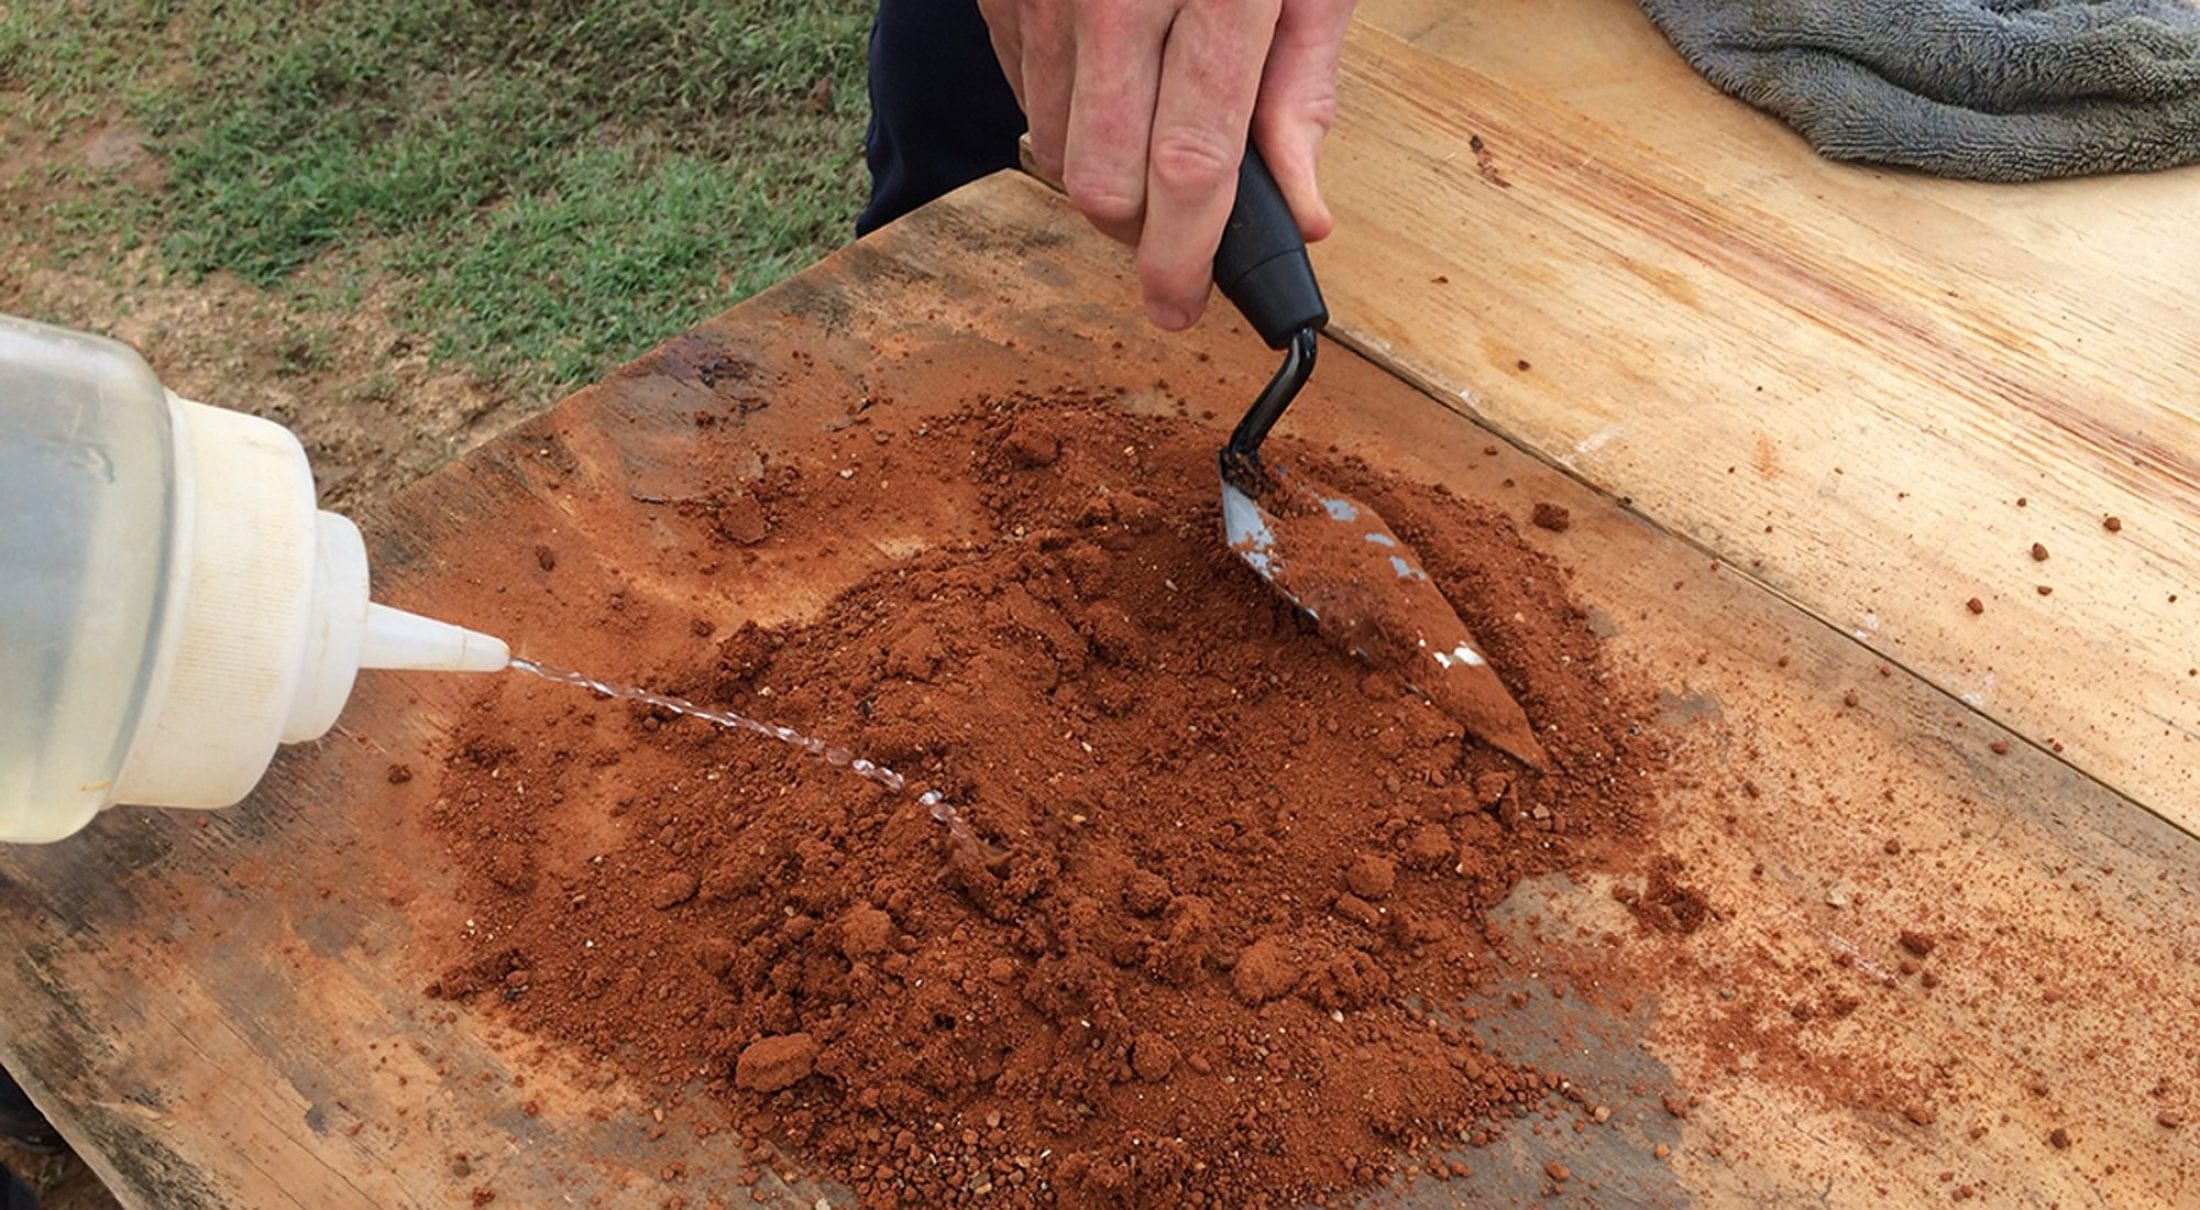 Maggie Inhofe says Rolling the soil into different shapes will give you different information about its properties.